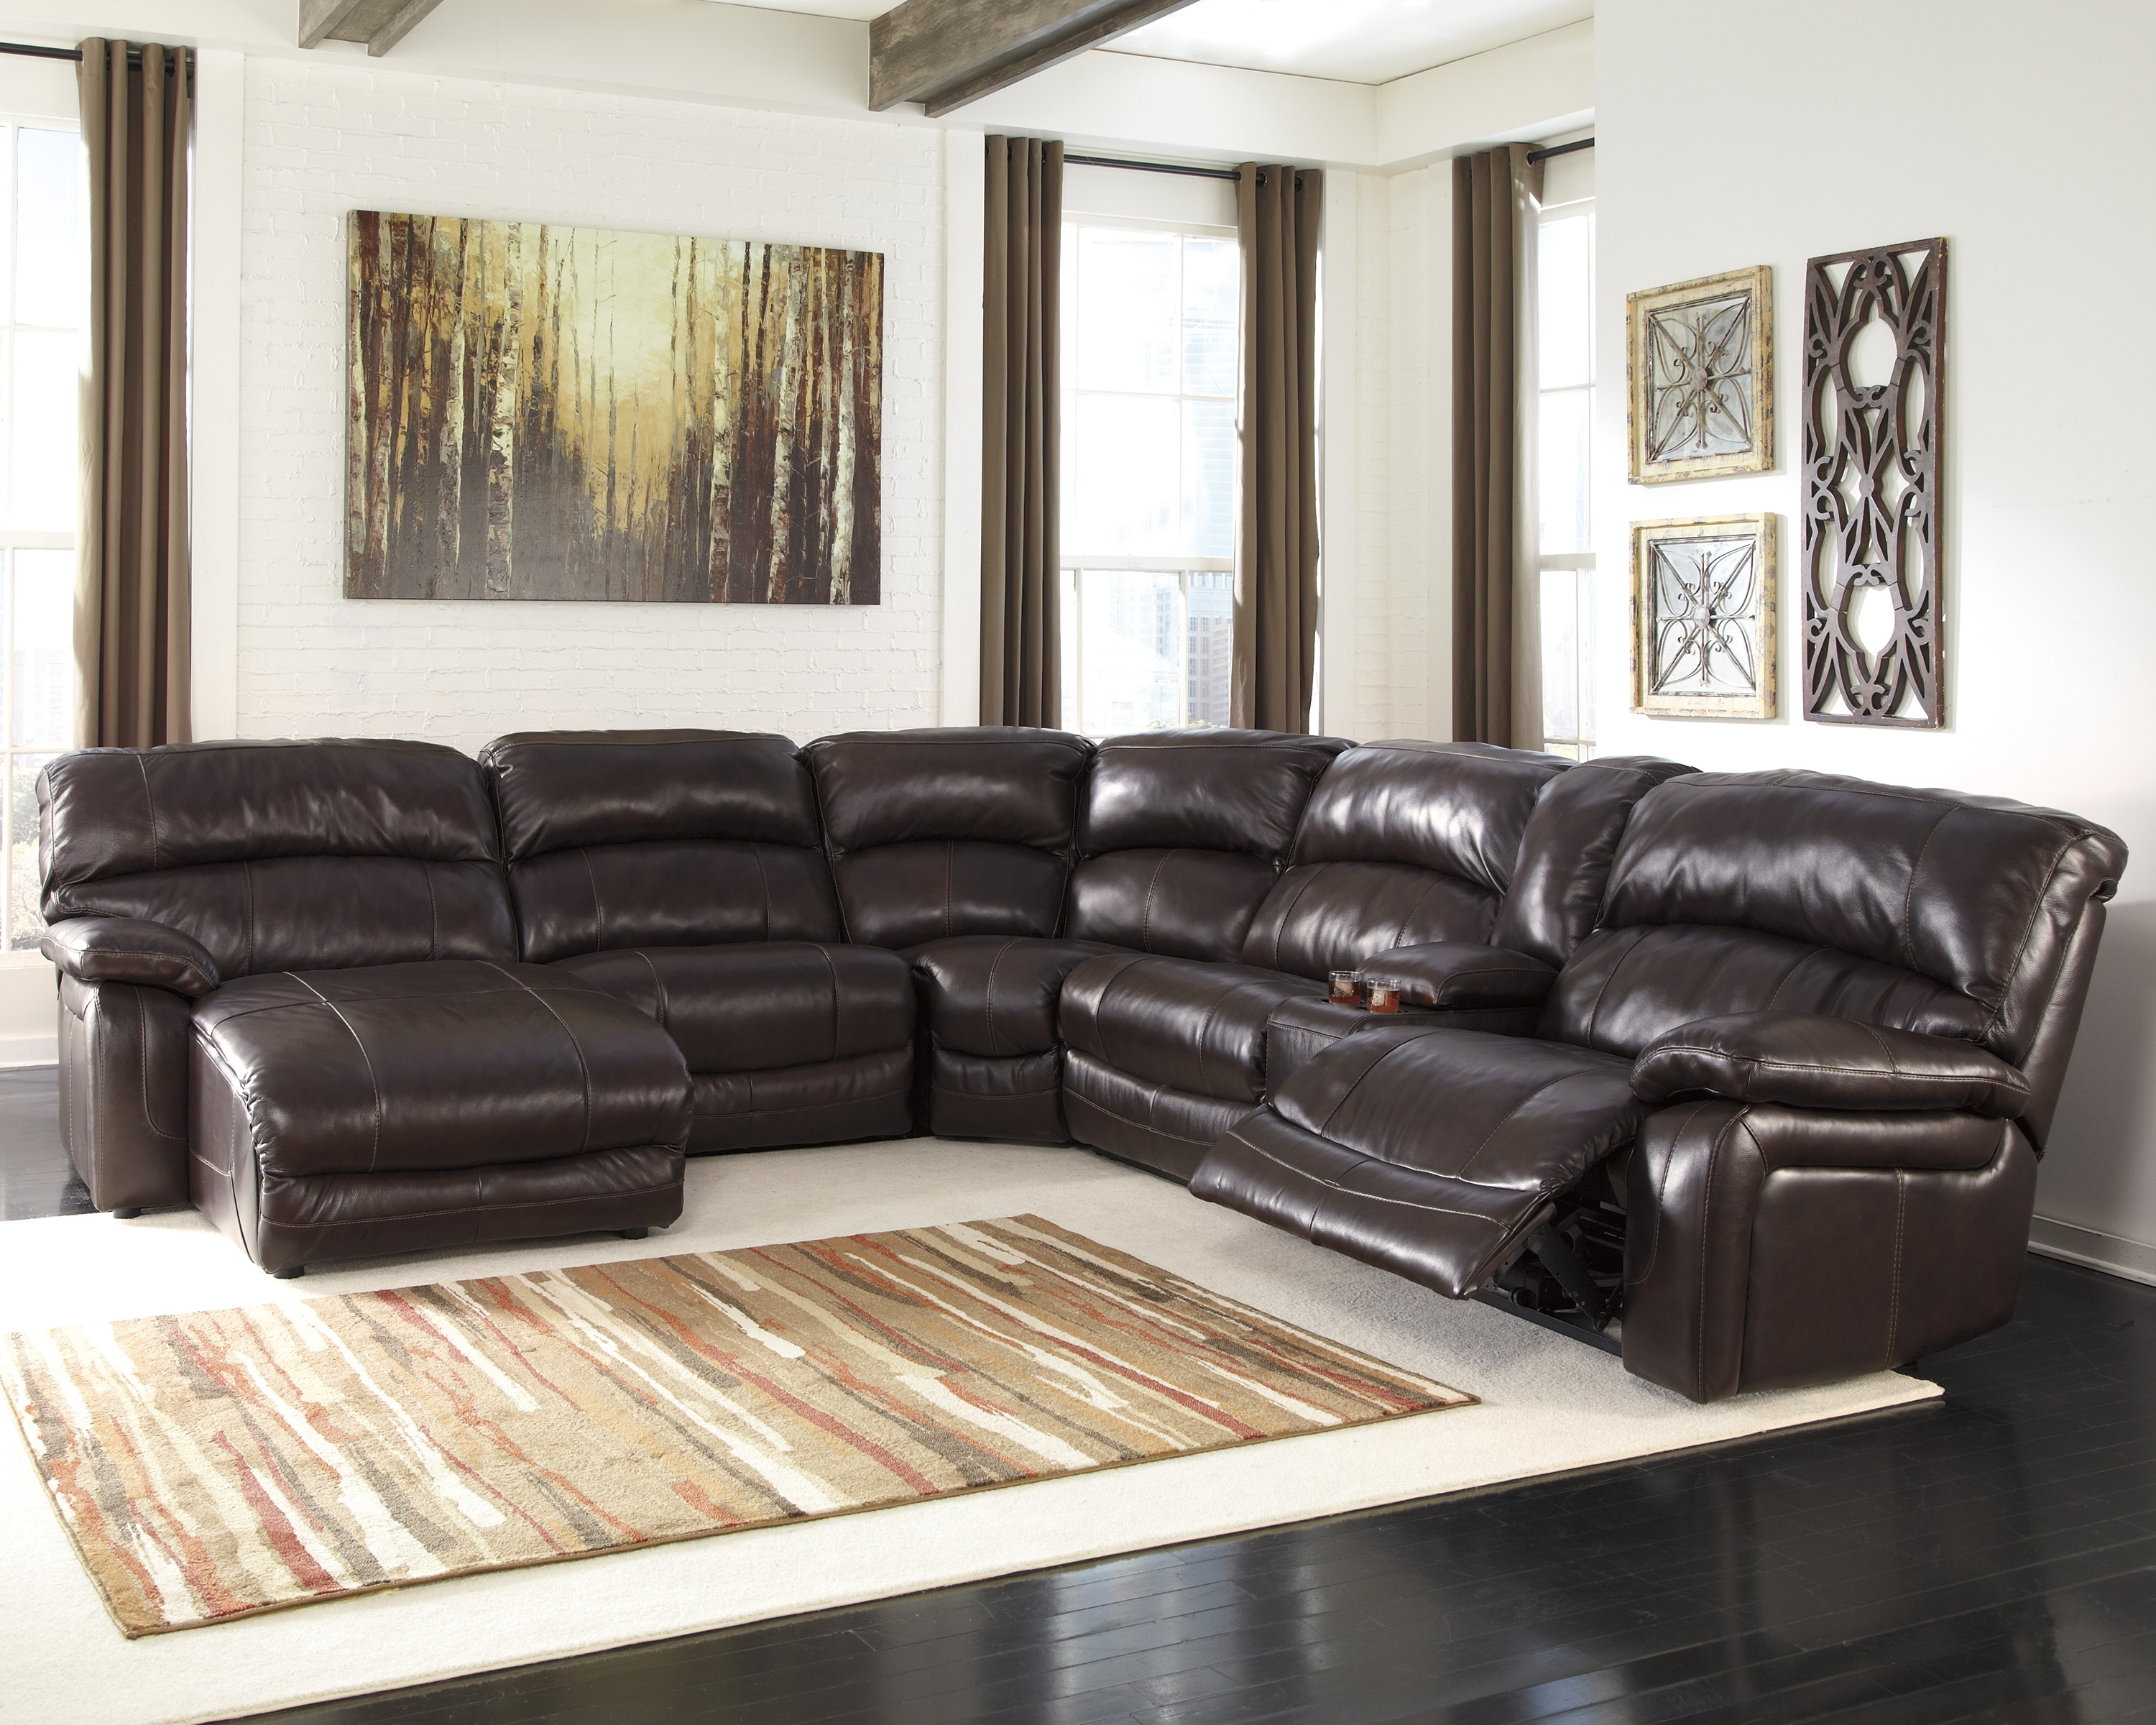 Chaise Recliners Inside Well Liked Leather Sectional Sofas With Recliners And Cup Holders Sectional (View 4 of 15)